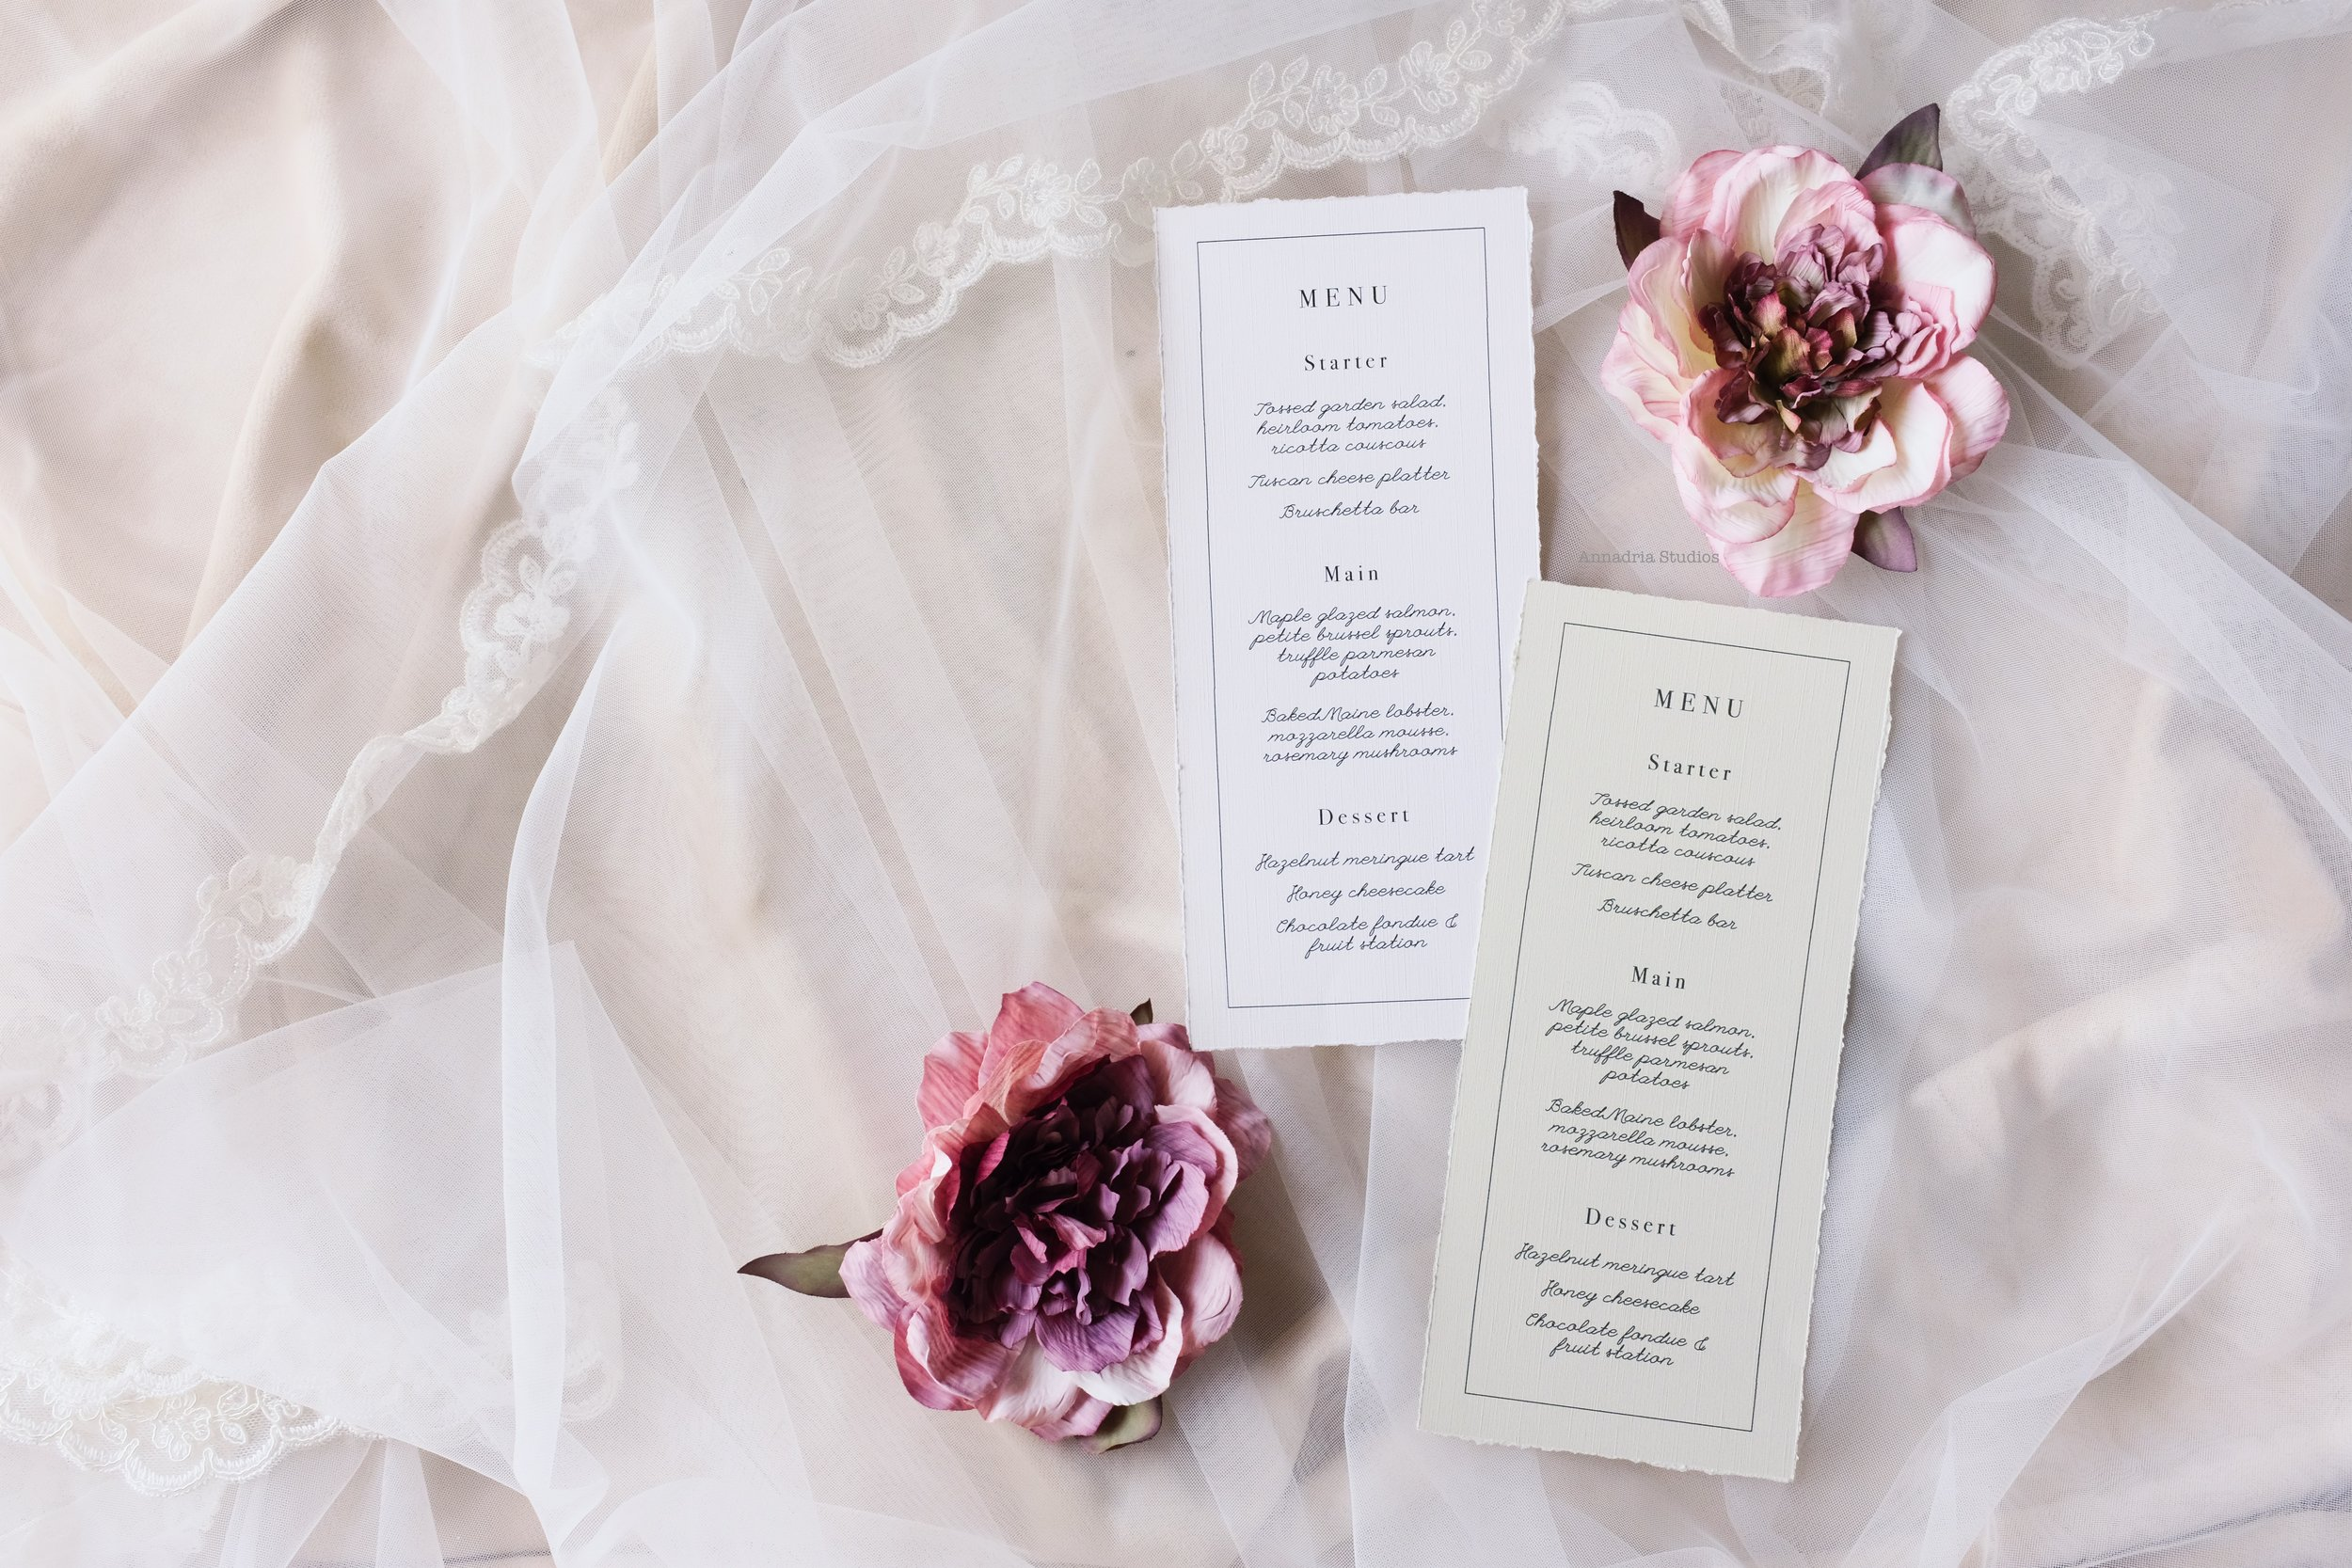 Deckle edge linen menu cards, exquisitely designed with hand-torn edges.